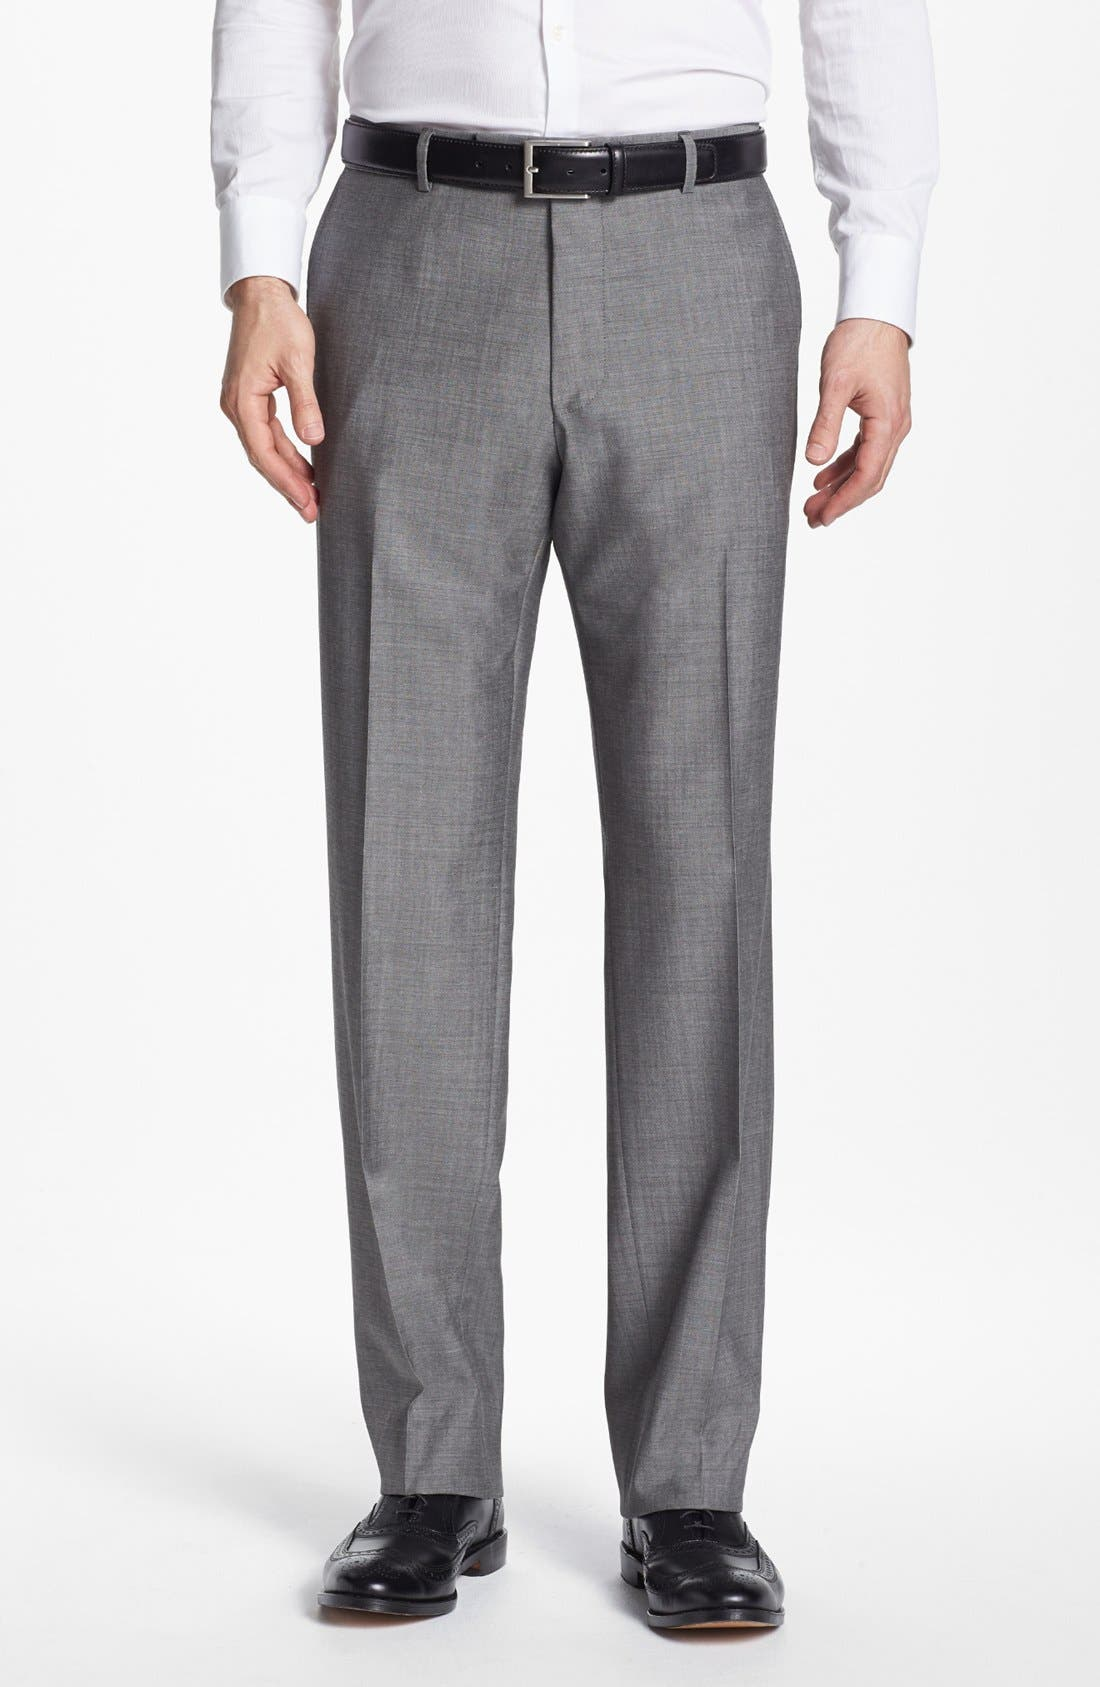 BOSS HUGO BOSS 'Jeffrey US' Flat Front Pinpoint Wool Trousers,                         Main,                         color, 022